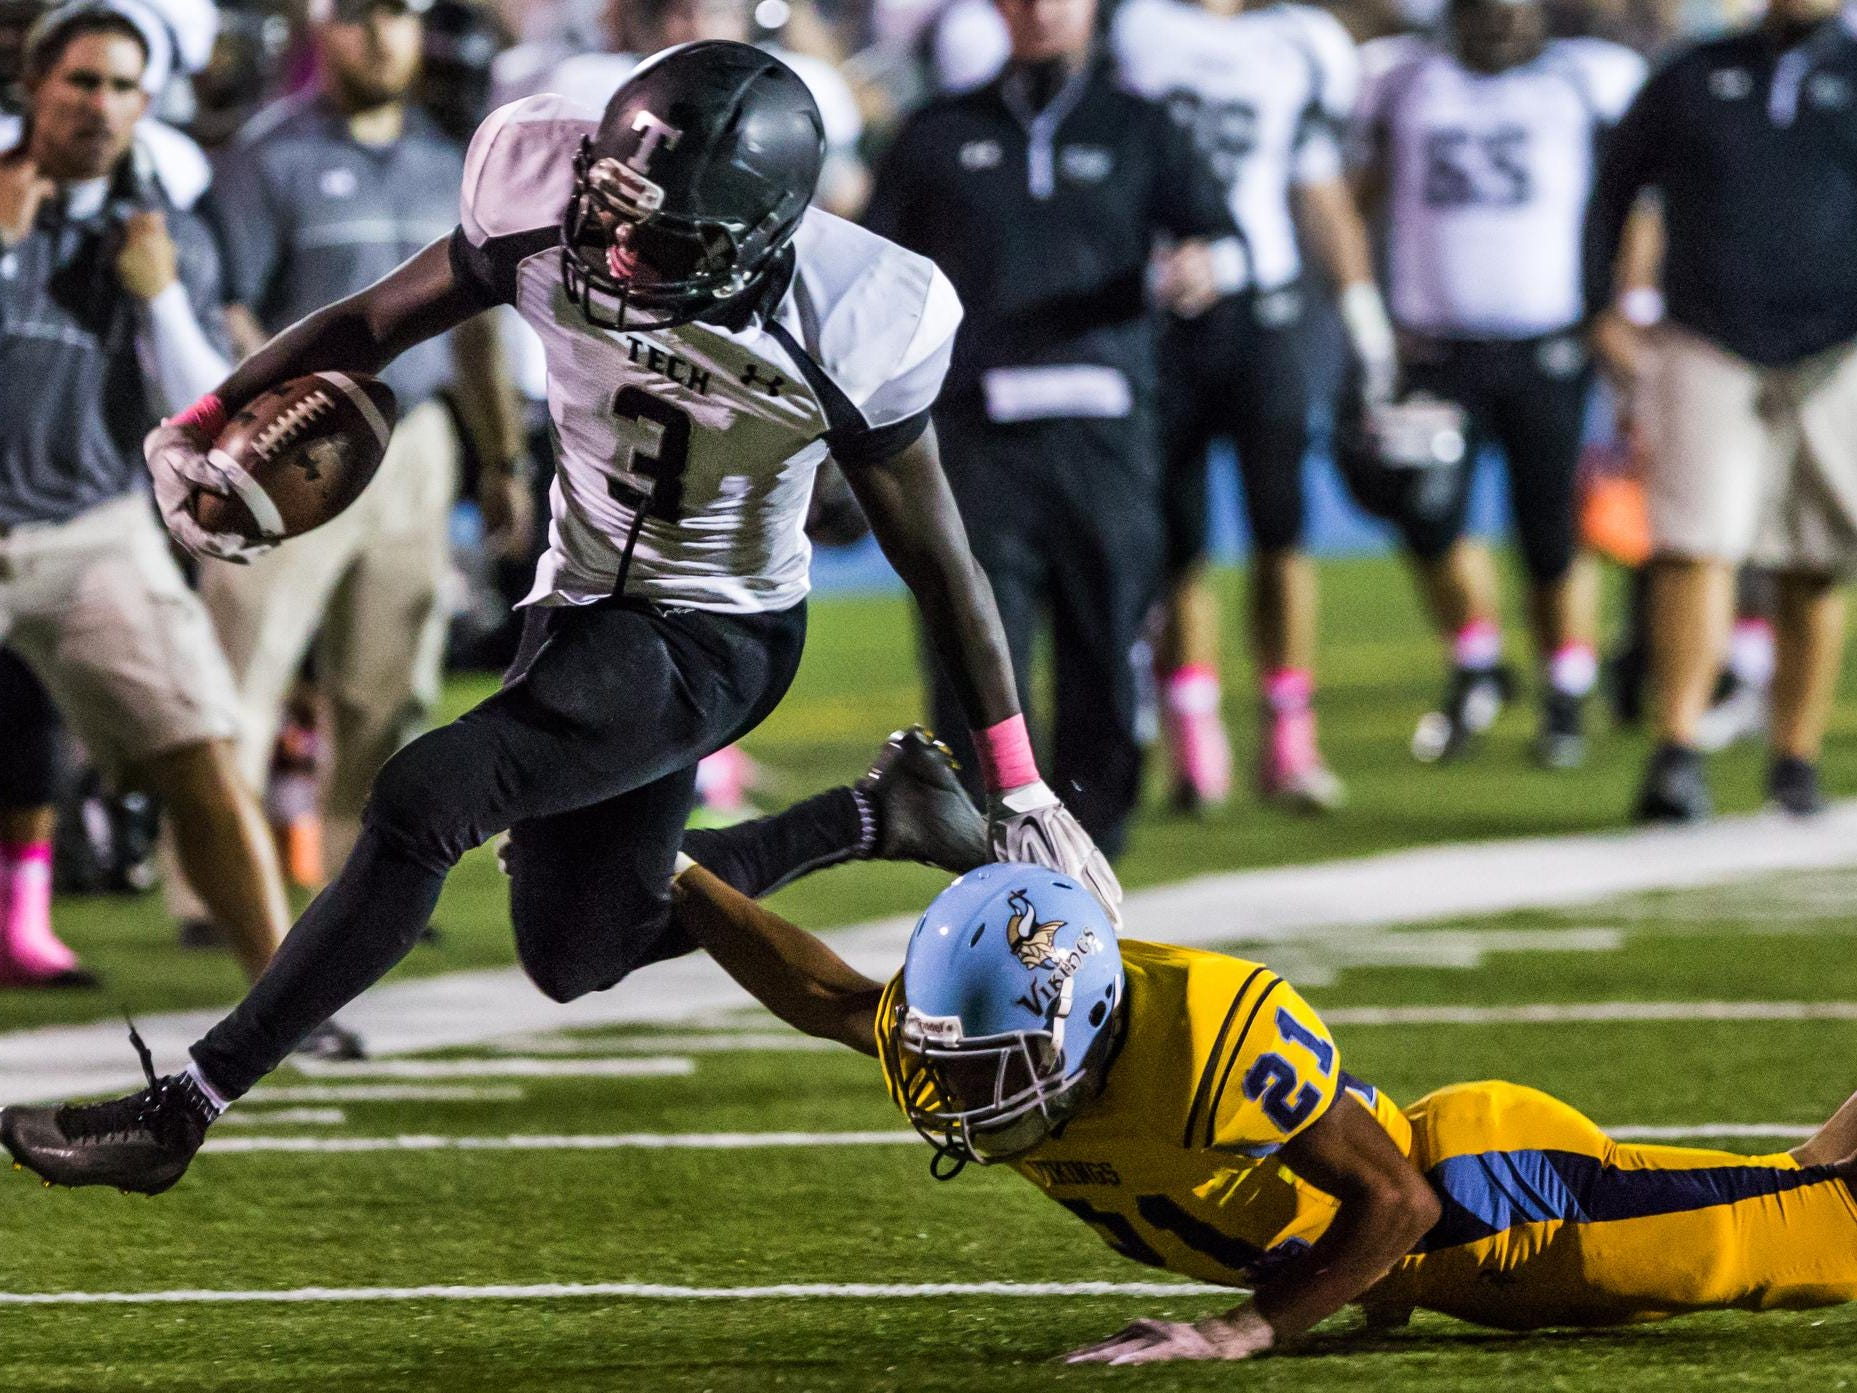 Patrick Griffin and Sussex Tech will once again look to vie for a Division I championship.